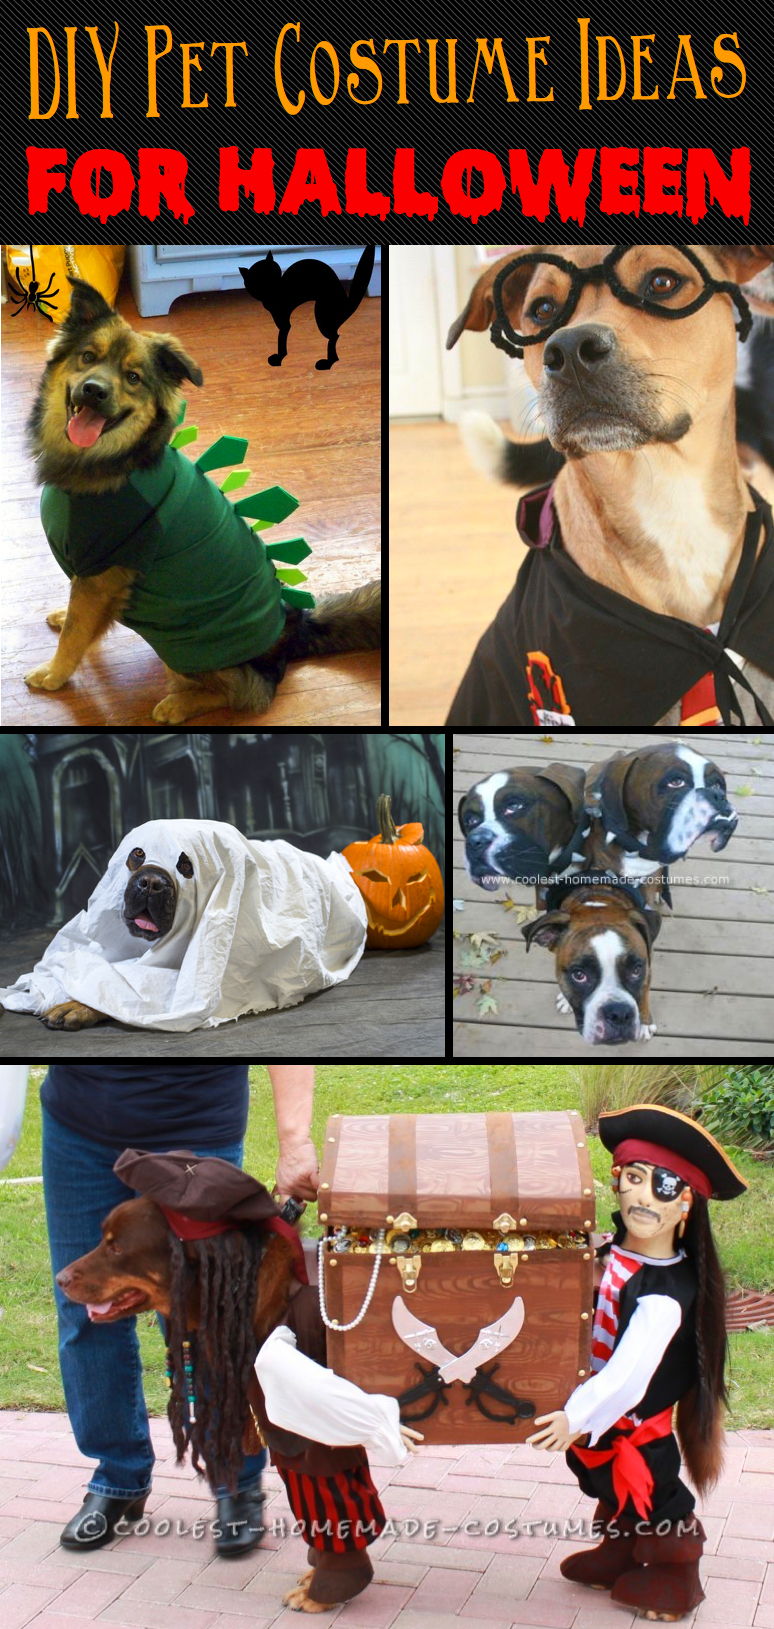 20 adorable diy pet costume ideas for halloween 2017 20 incredibly adorable yet simple diy pet costume ideas for halloween solutioingenieria Choice Image